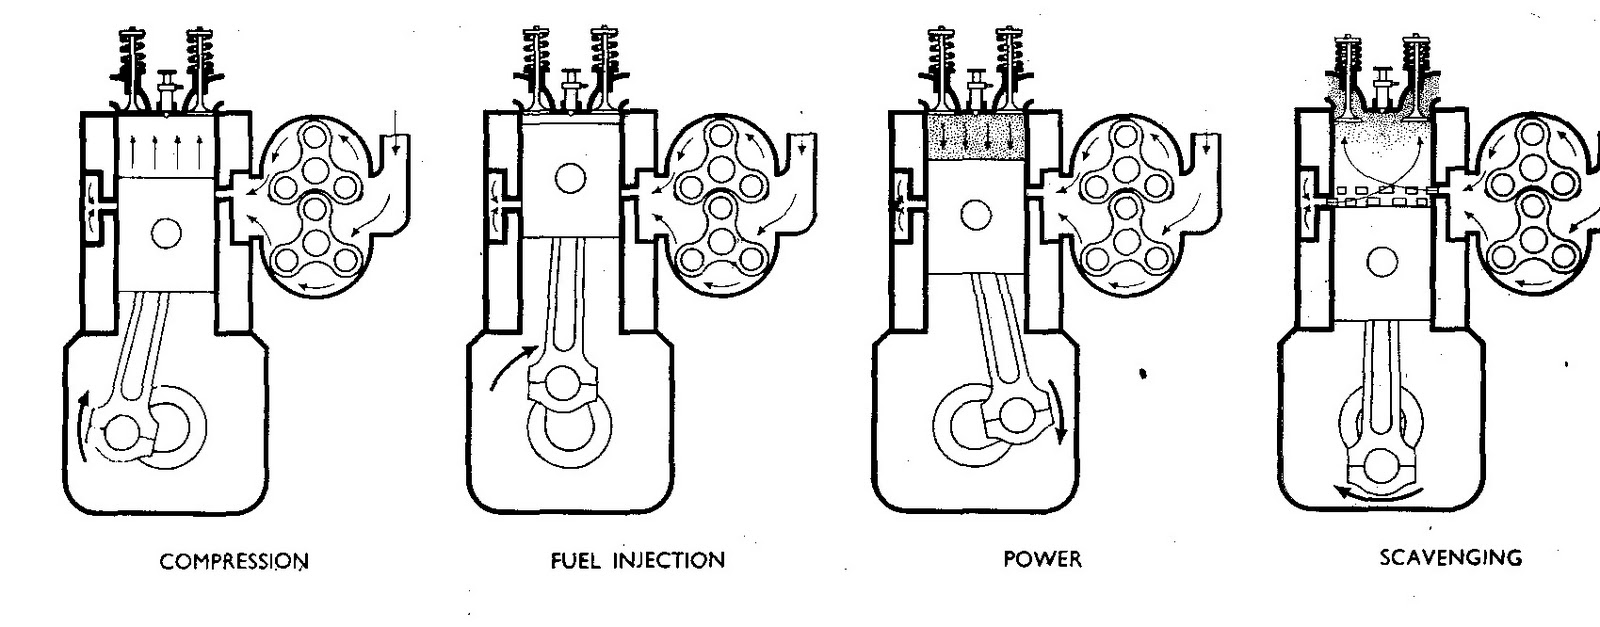 how to clean a two stroke engine